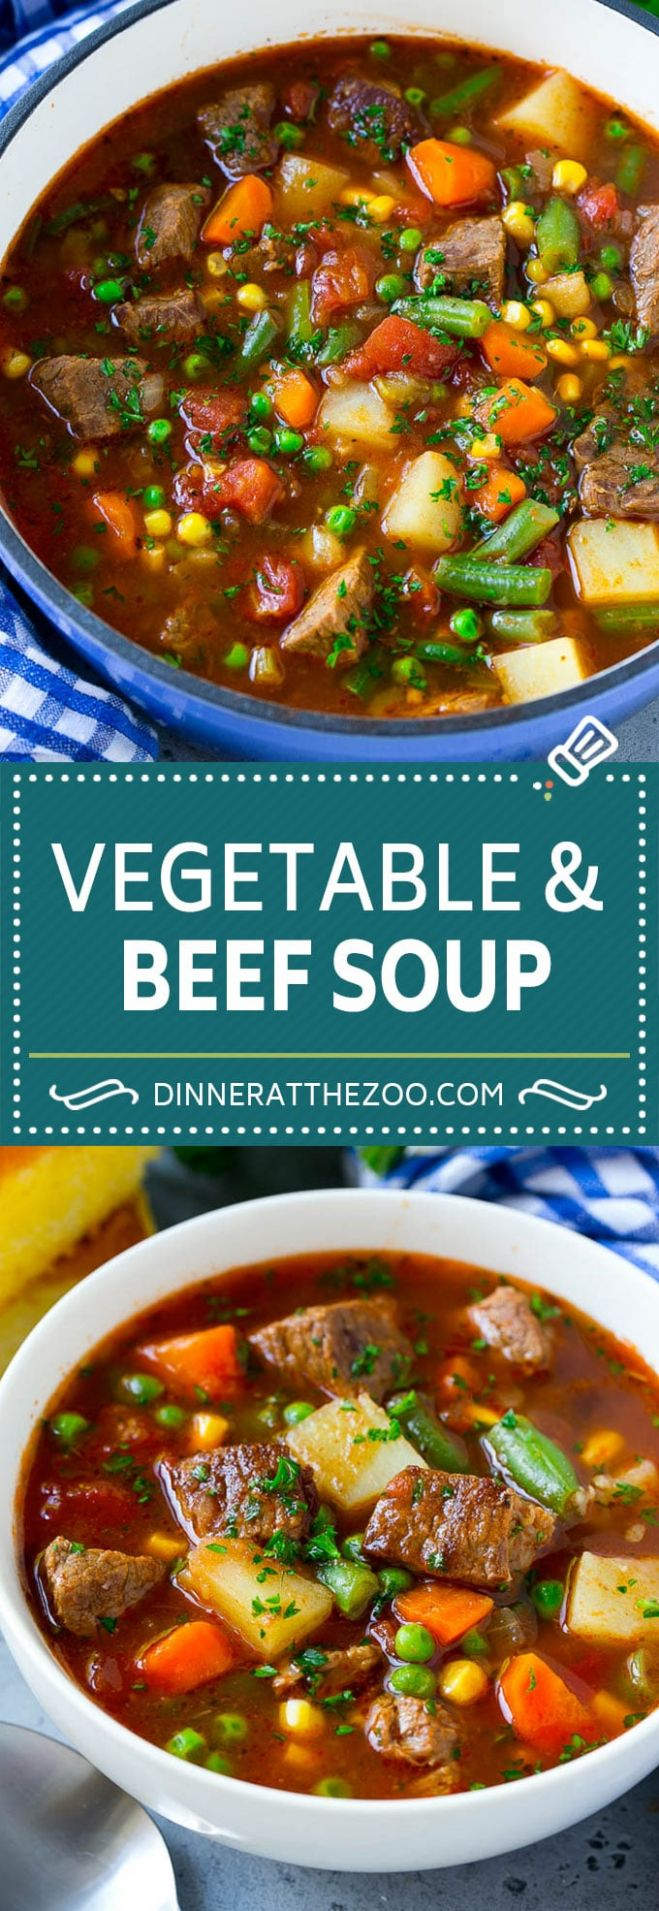 Vegetable Beef Soup - Dinner at the Zoo - Recipes For Vegetable Beef Soup